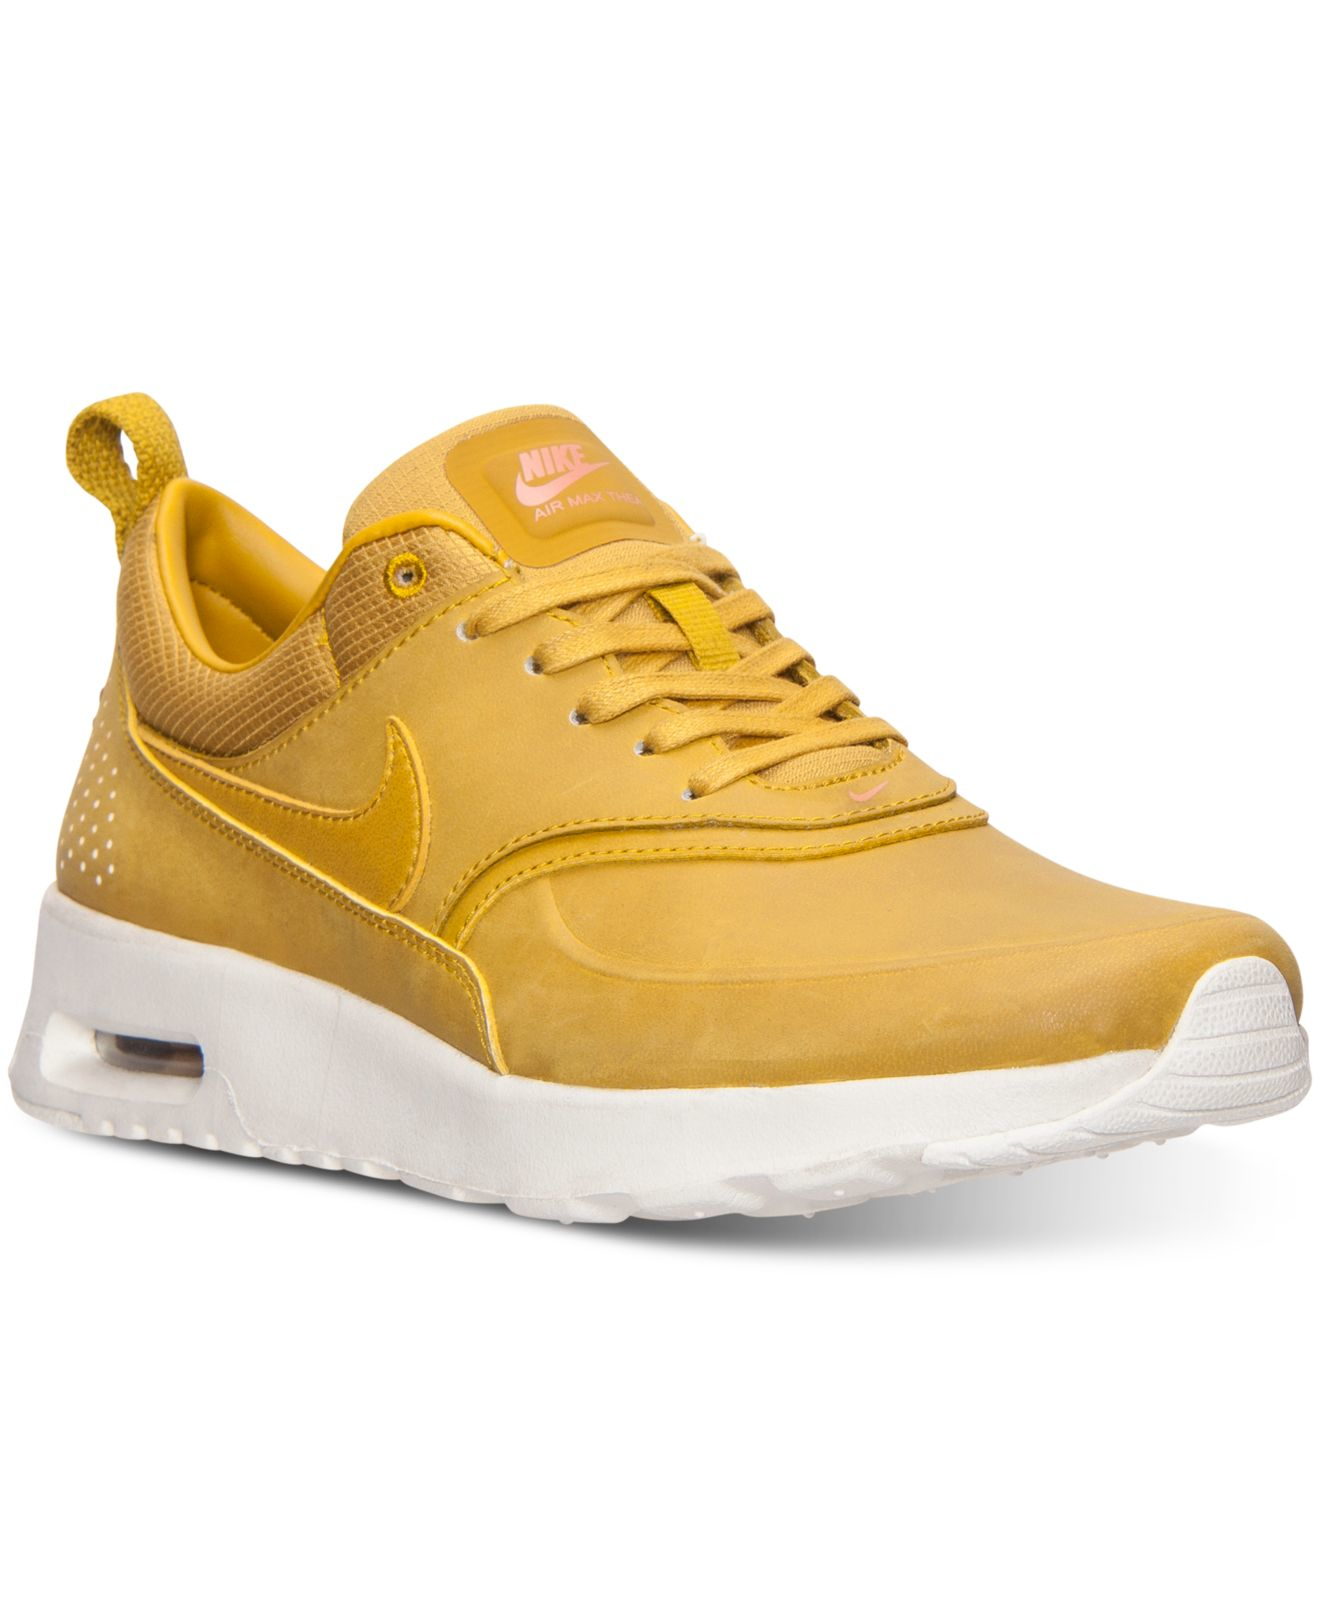 b616ad8c57 Nike Women's Air Max Thea Premium Running Sneakers From Finish Line ...